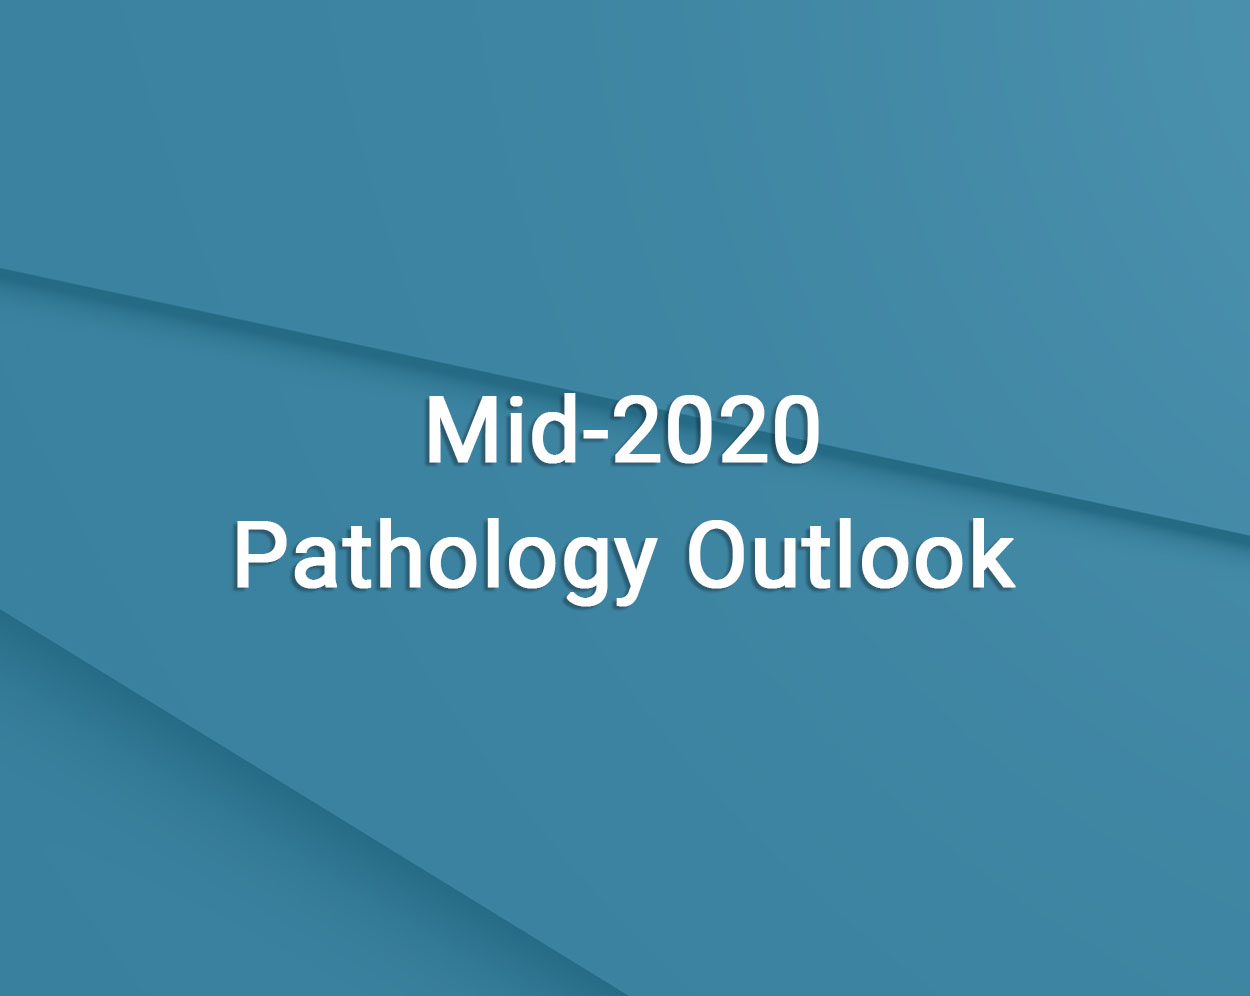 Mid 2020 Pathology Outlook